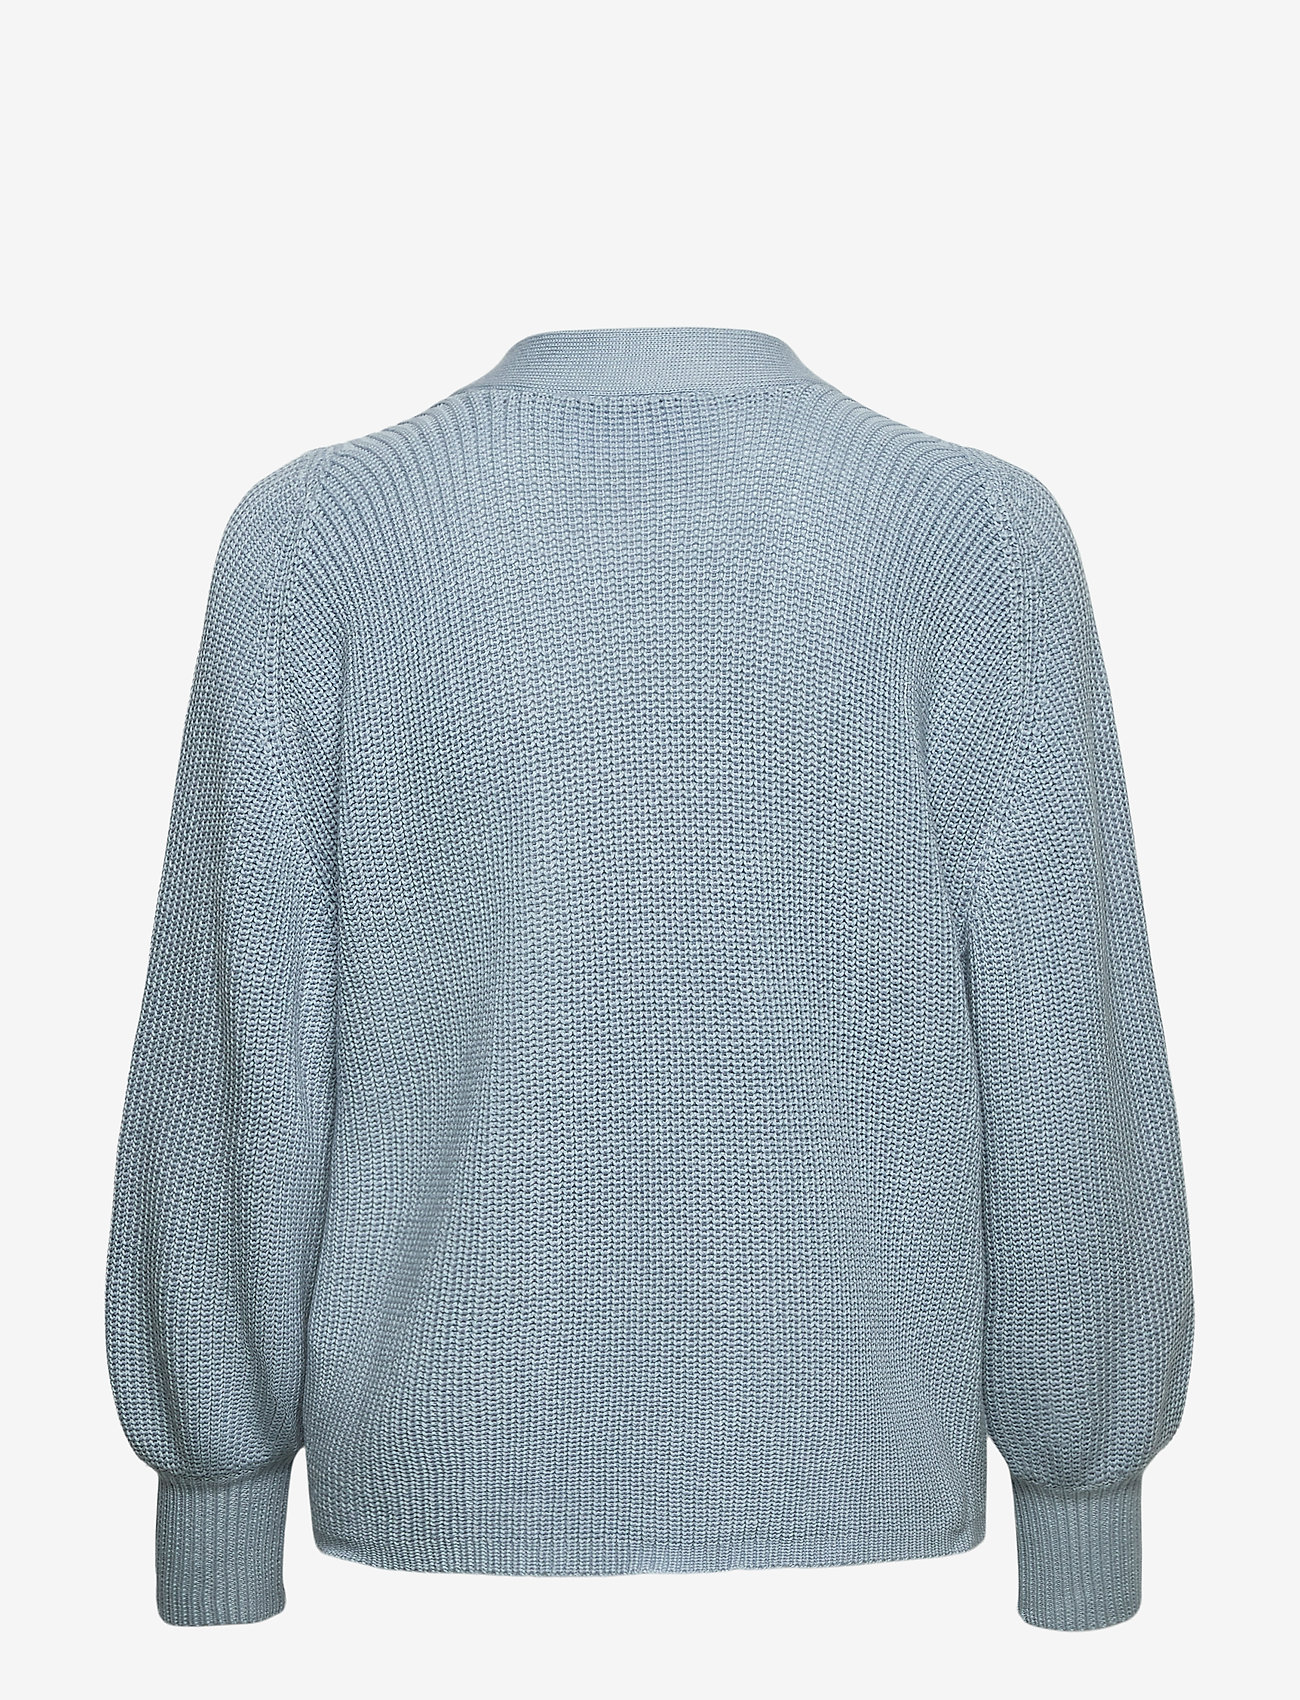 Selected Femme - SLFEMMY LS KNIT CARDIGAN - cardigans - cashmere blue - 1